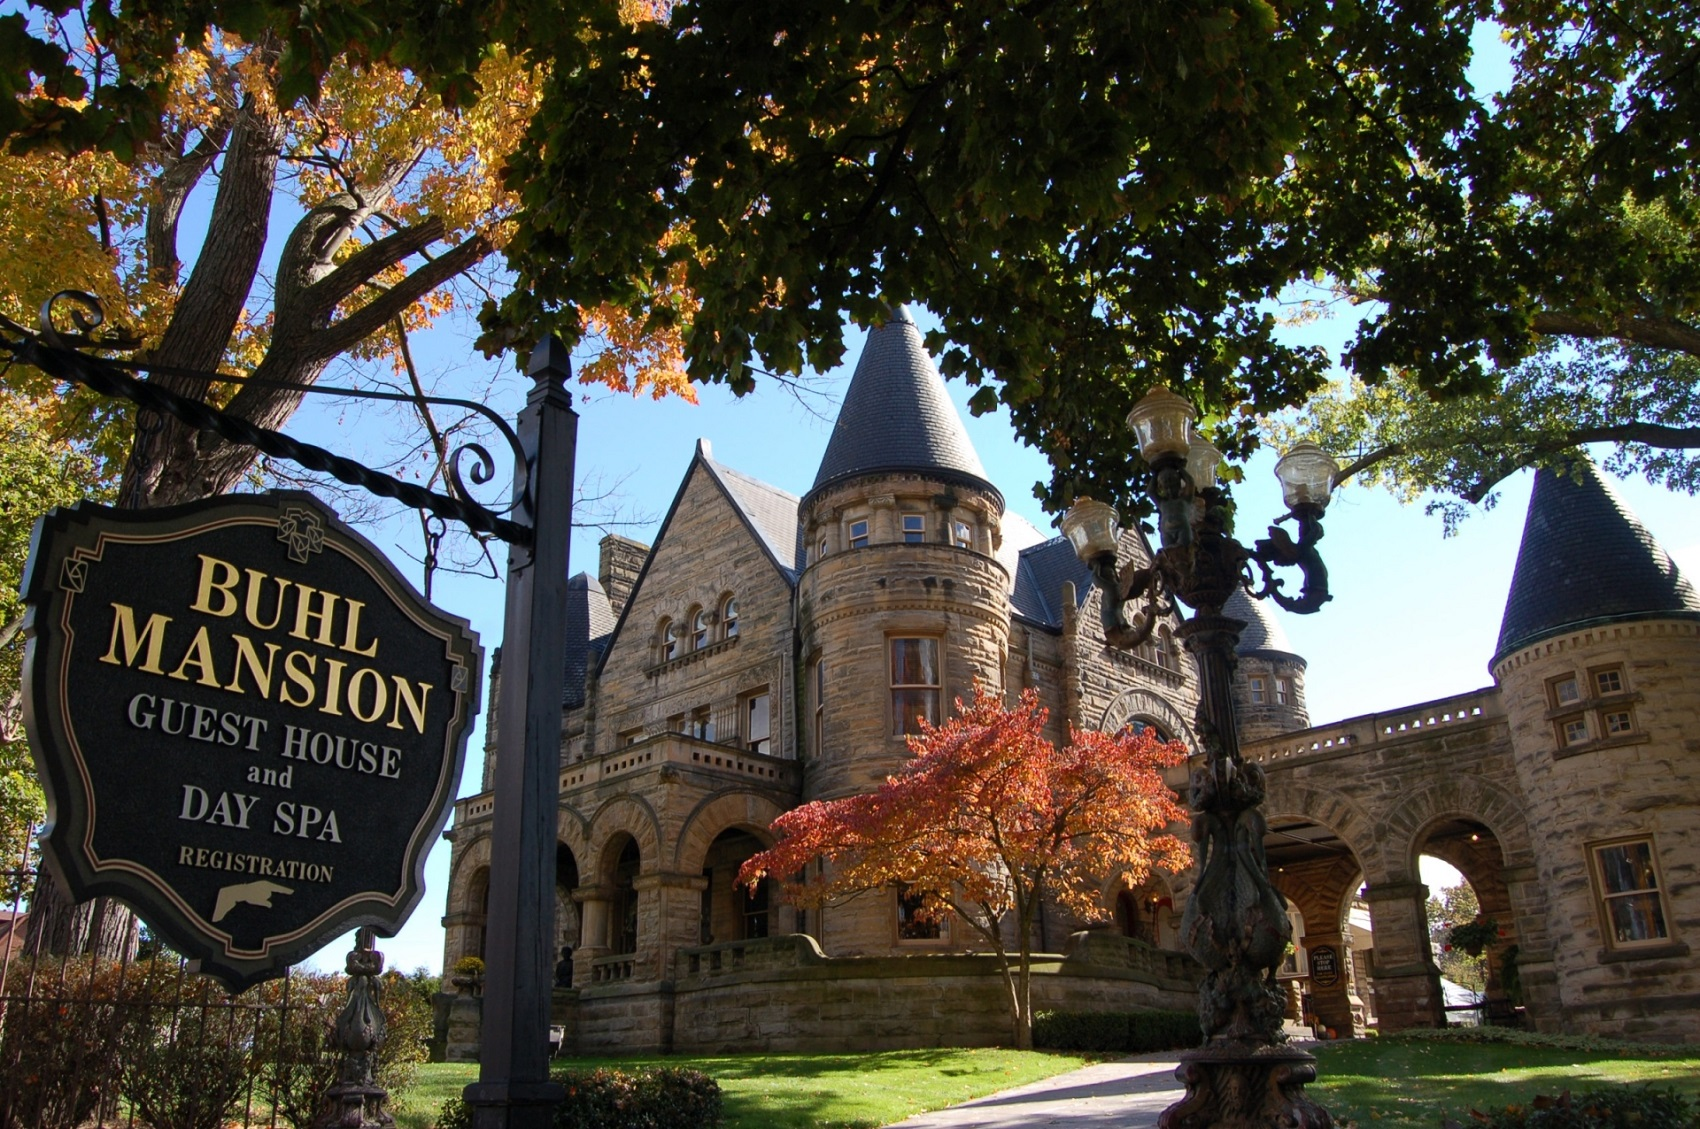 Buhl Mansion Guesthouse and Spa